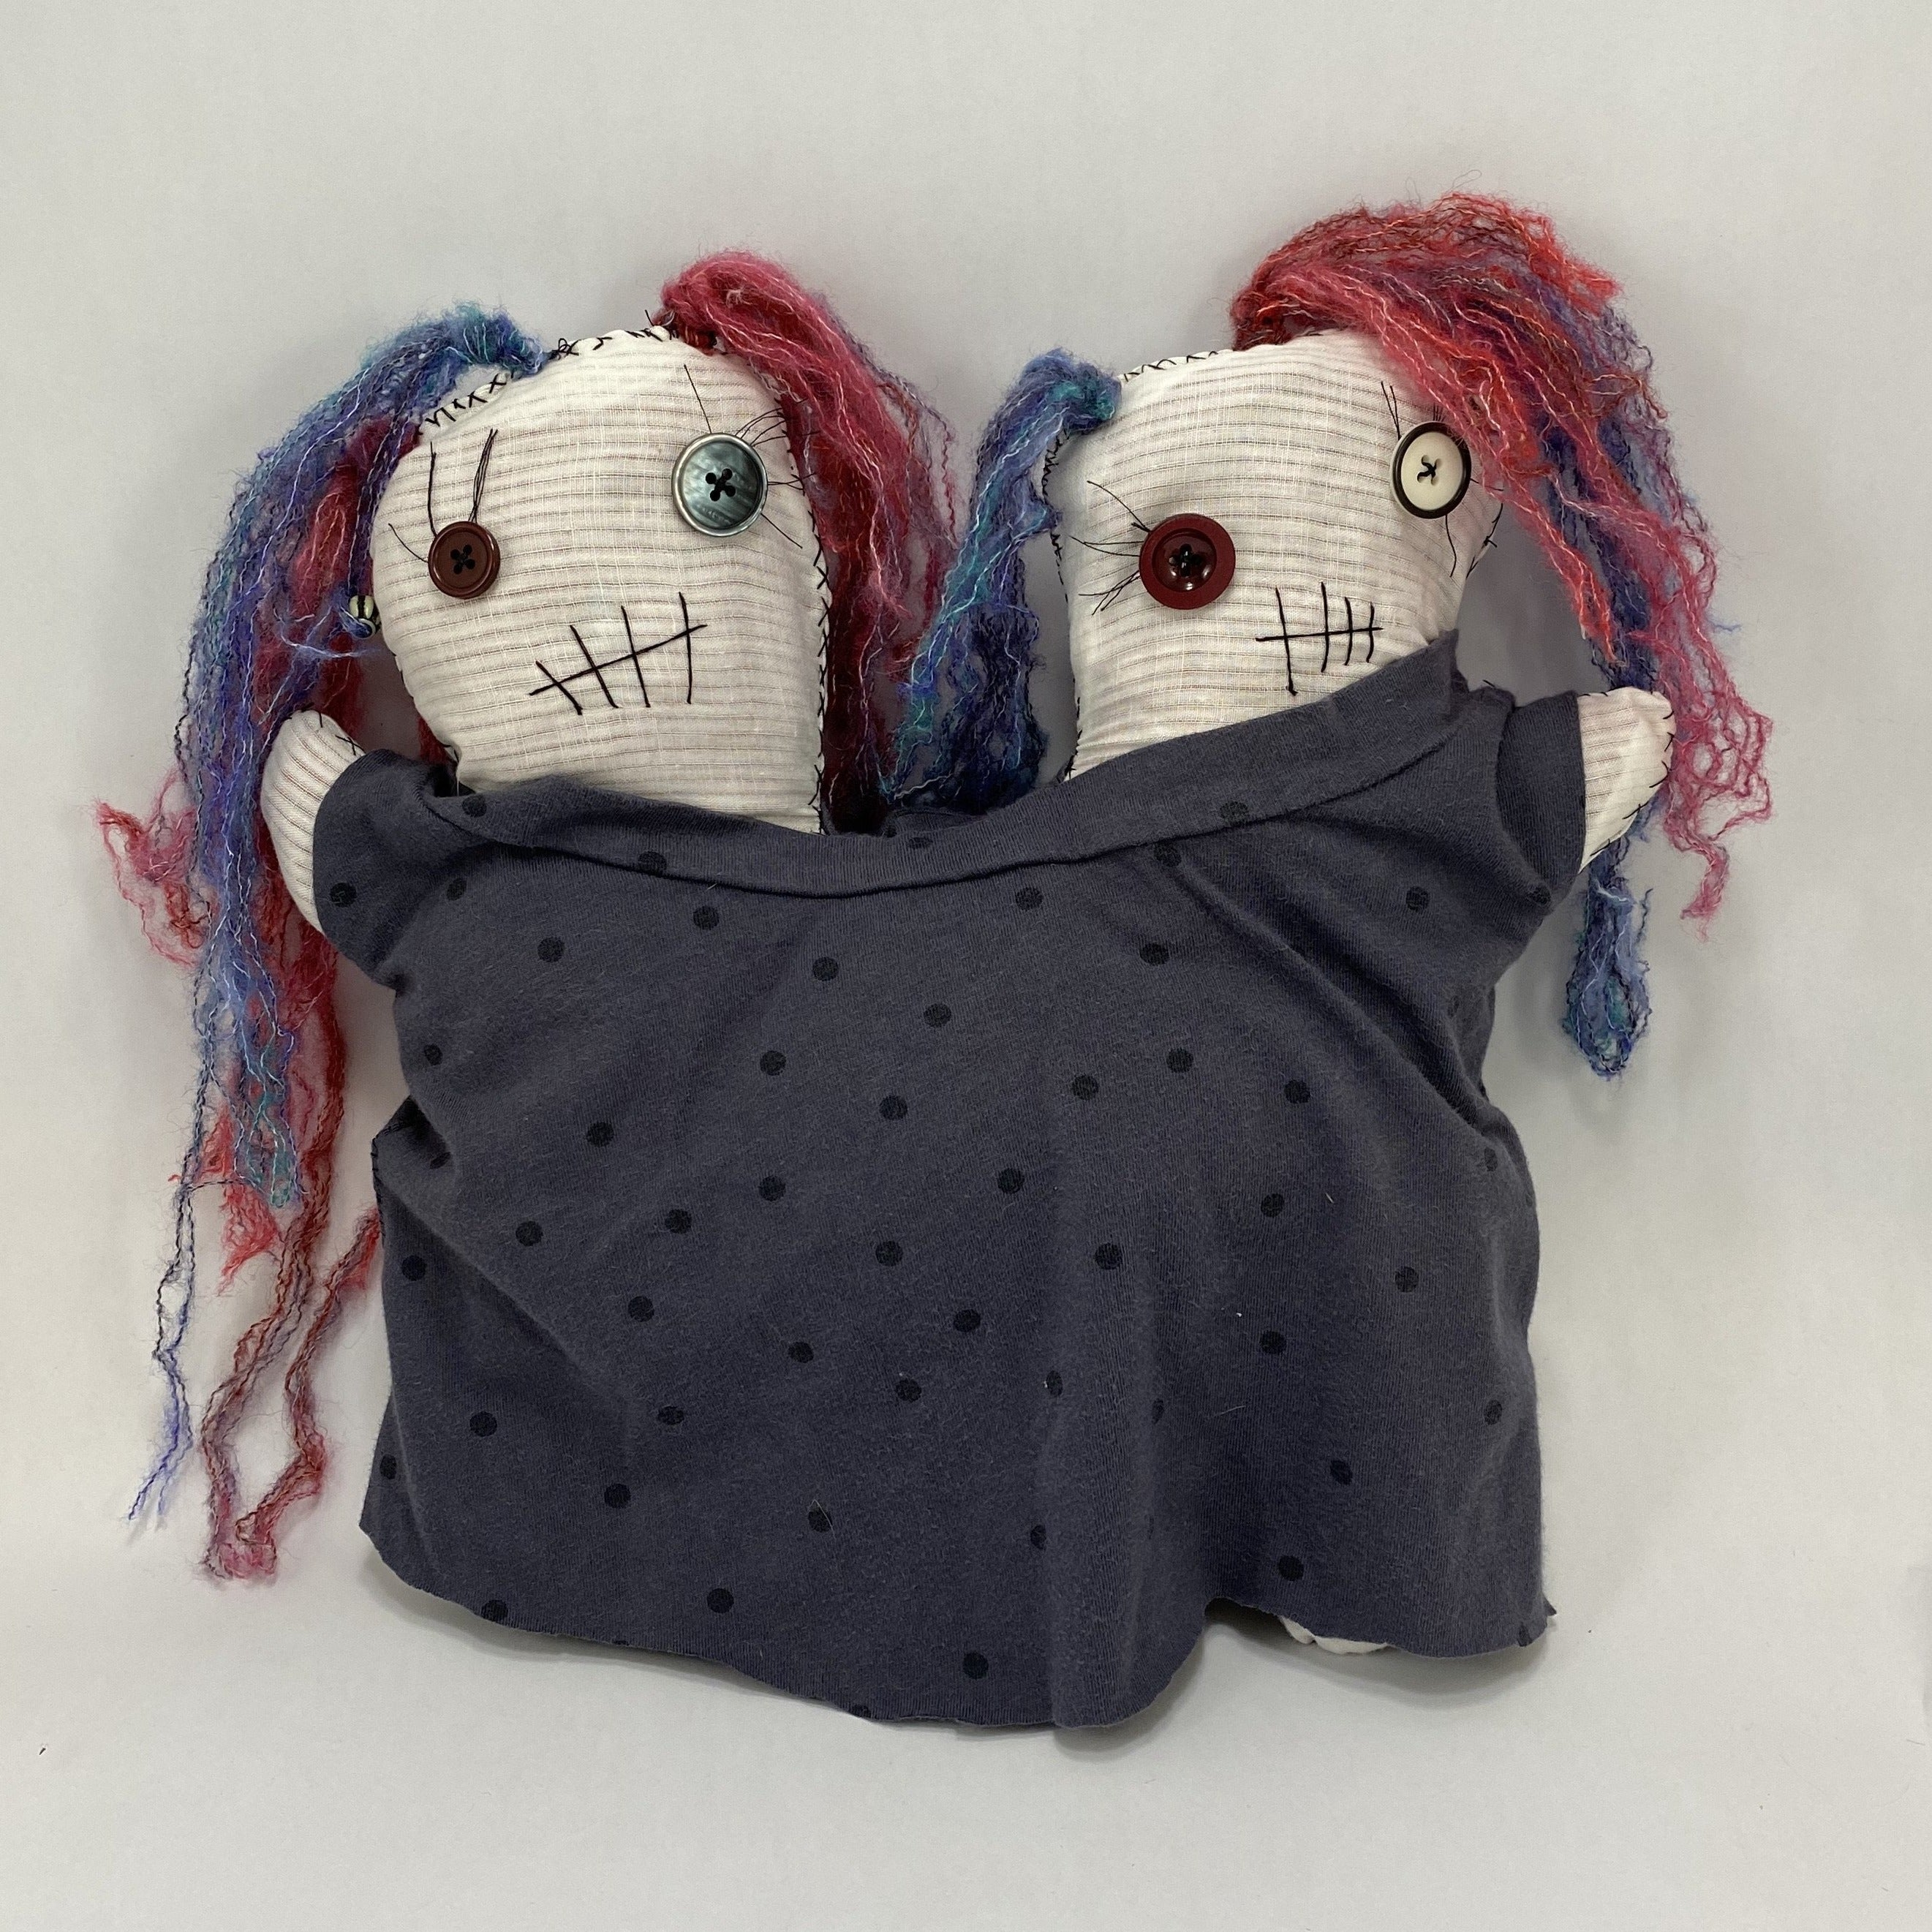 Conjoined Twins Voodoo Doll - Jilda and Hilda